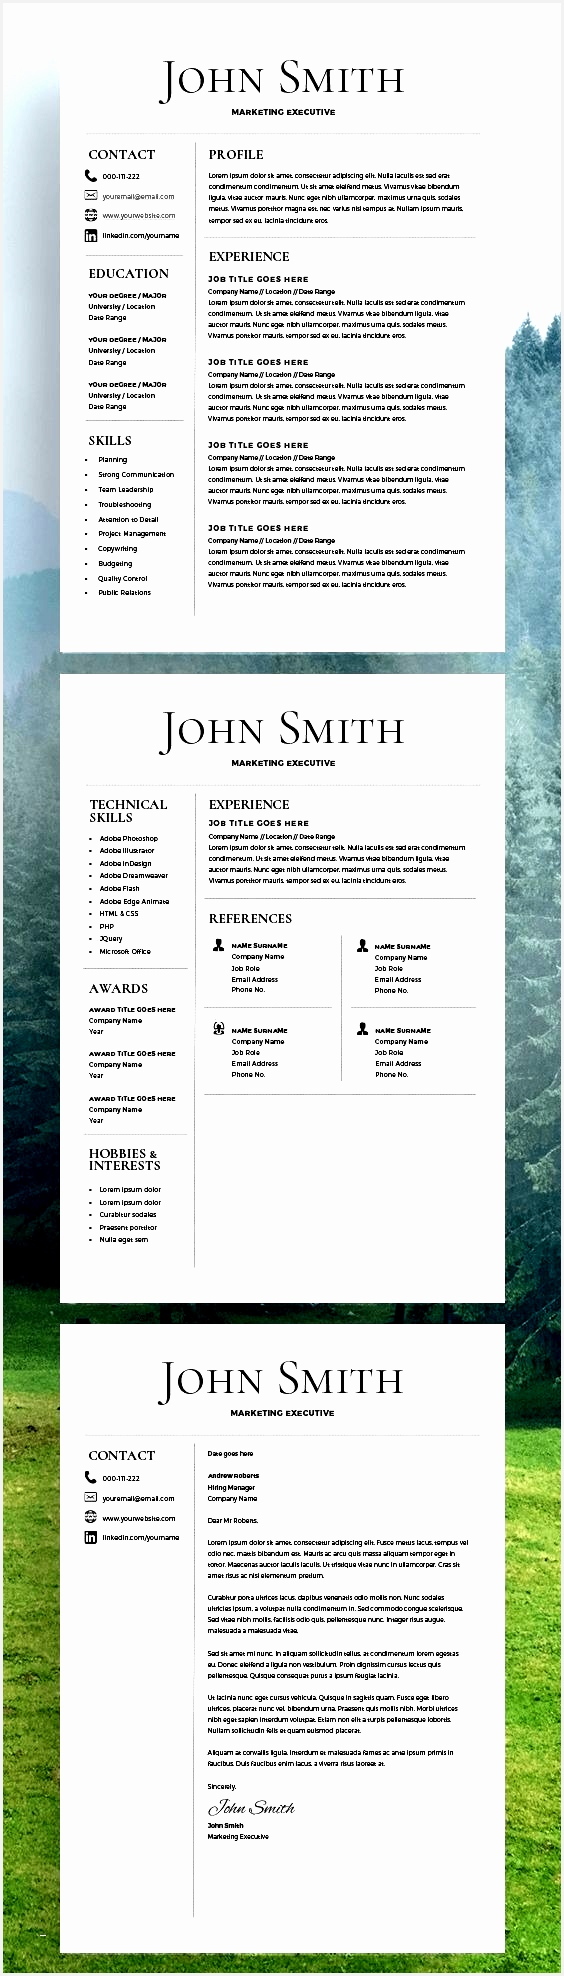 Resume Template CV Template Free Cover Letter MS Word on Mac PC1976564